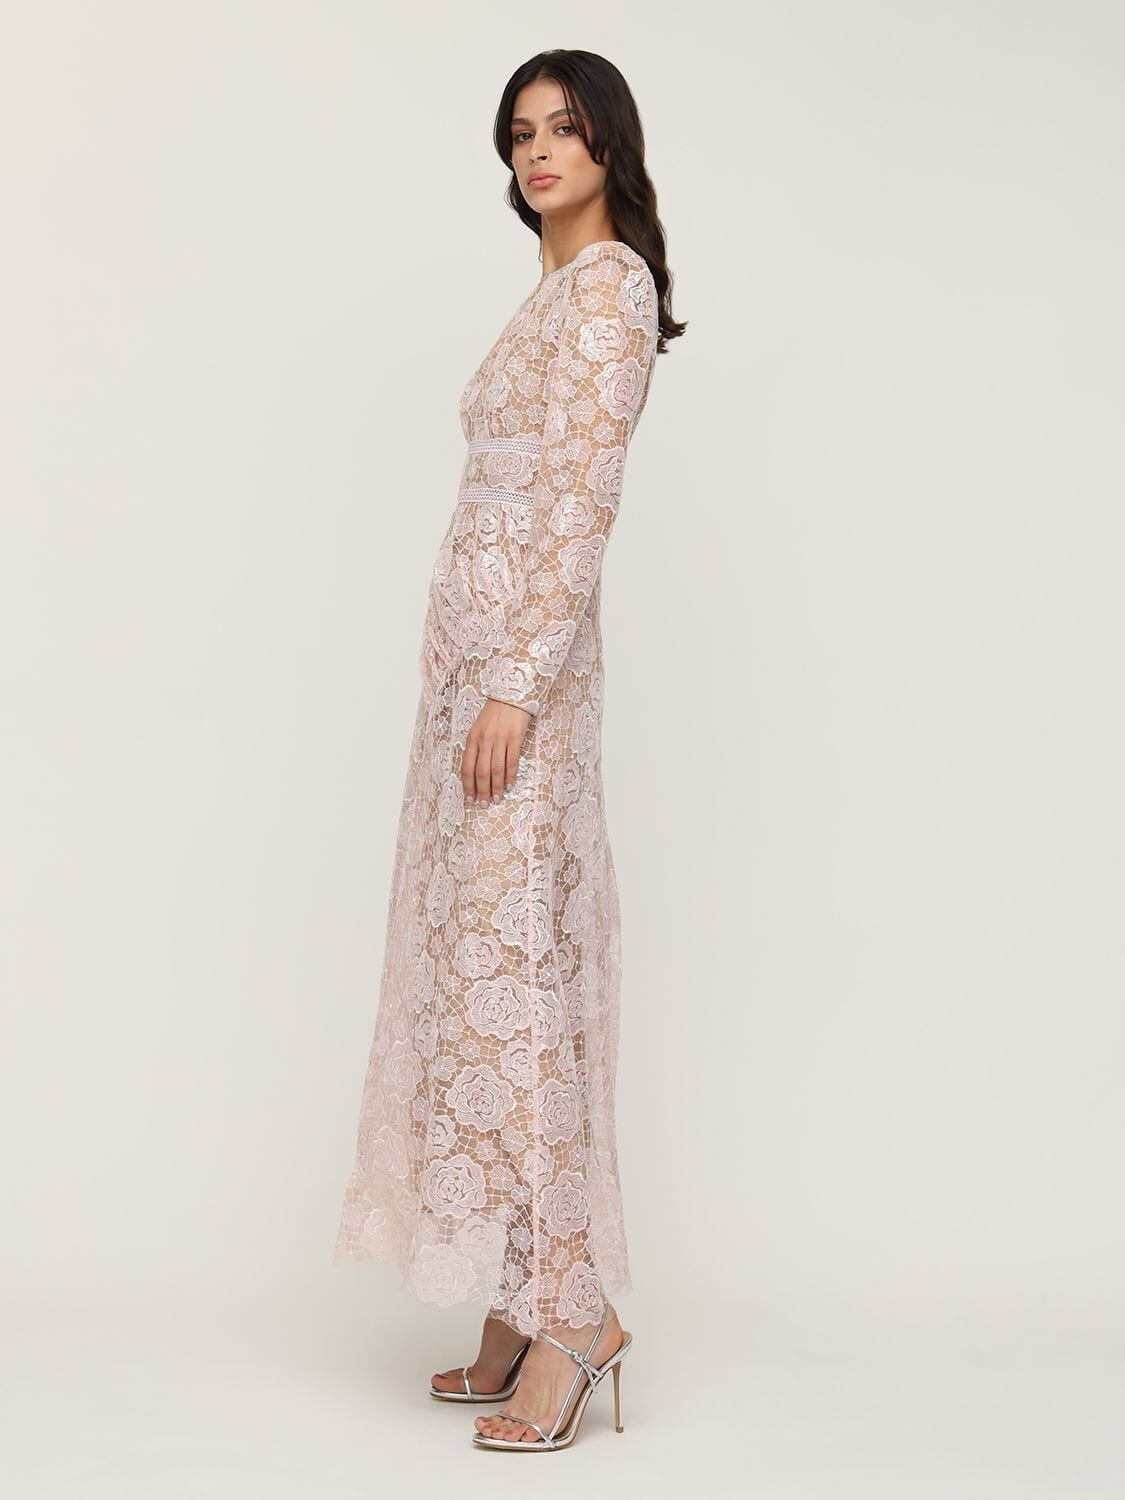 SELF-PORTRAIT Rose Lace Midi Dress